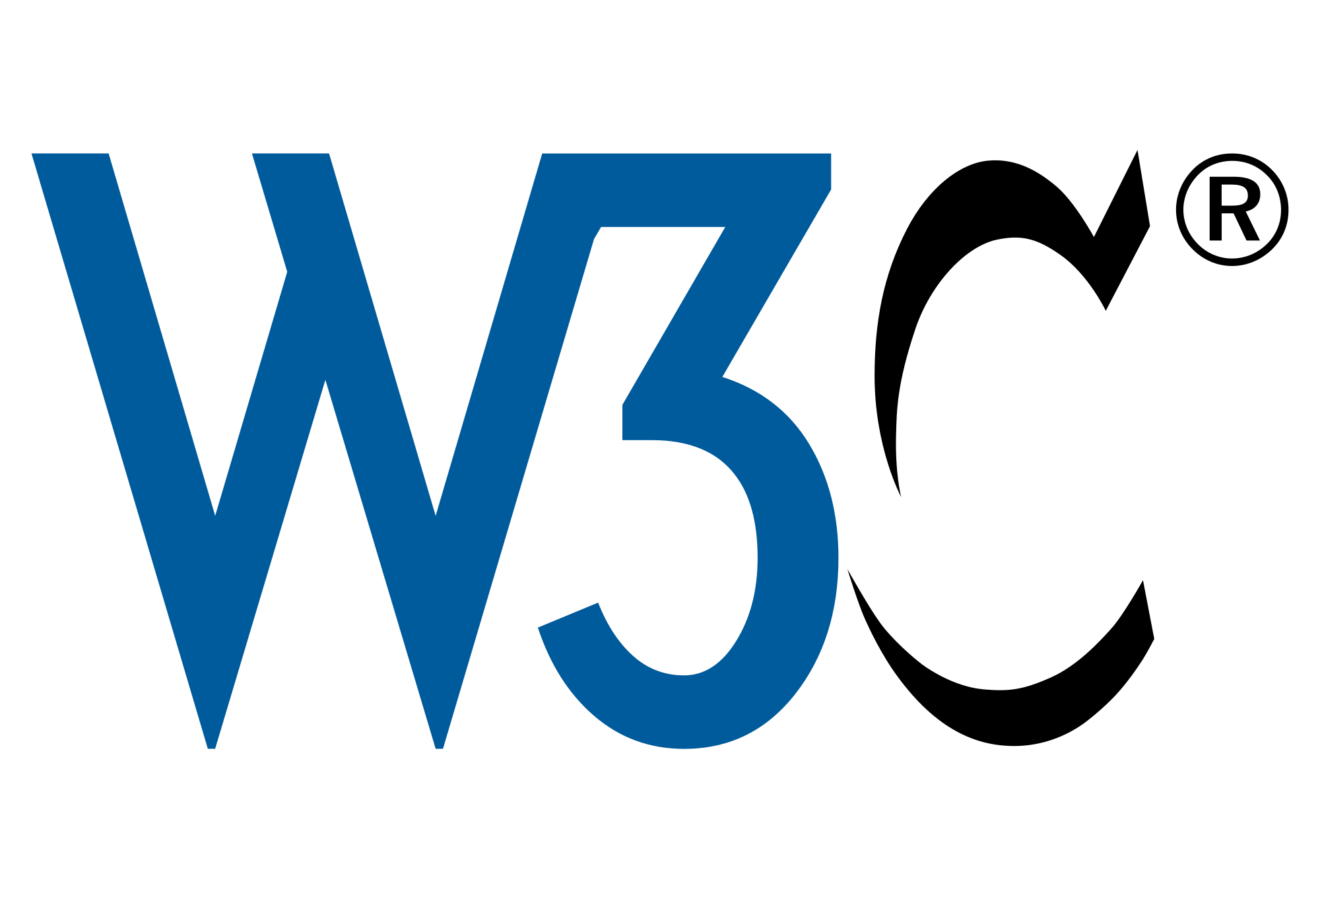 Section 508 Document Remediation for WCAG 2.1 Now Available